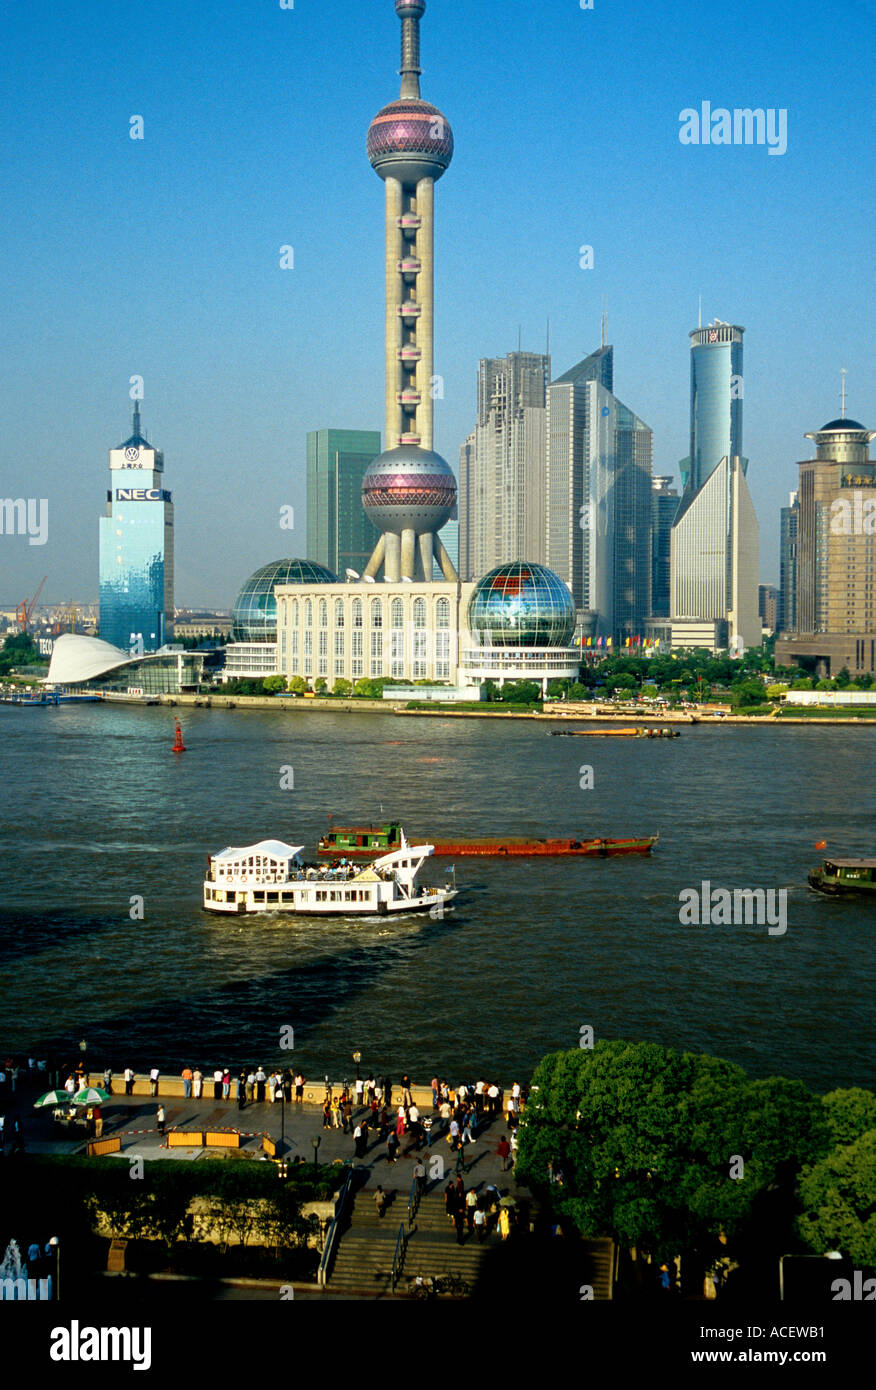 Shanghai China Pudong skyline including Orient Pearl TV Tower across Huangpu River from The Bund waterfront promenade  - Stock Image